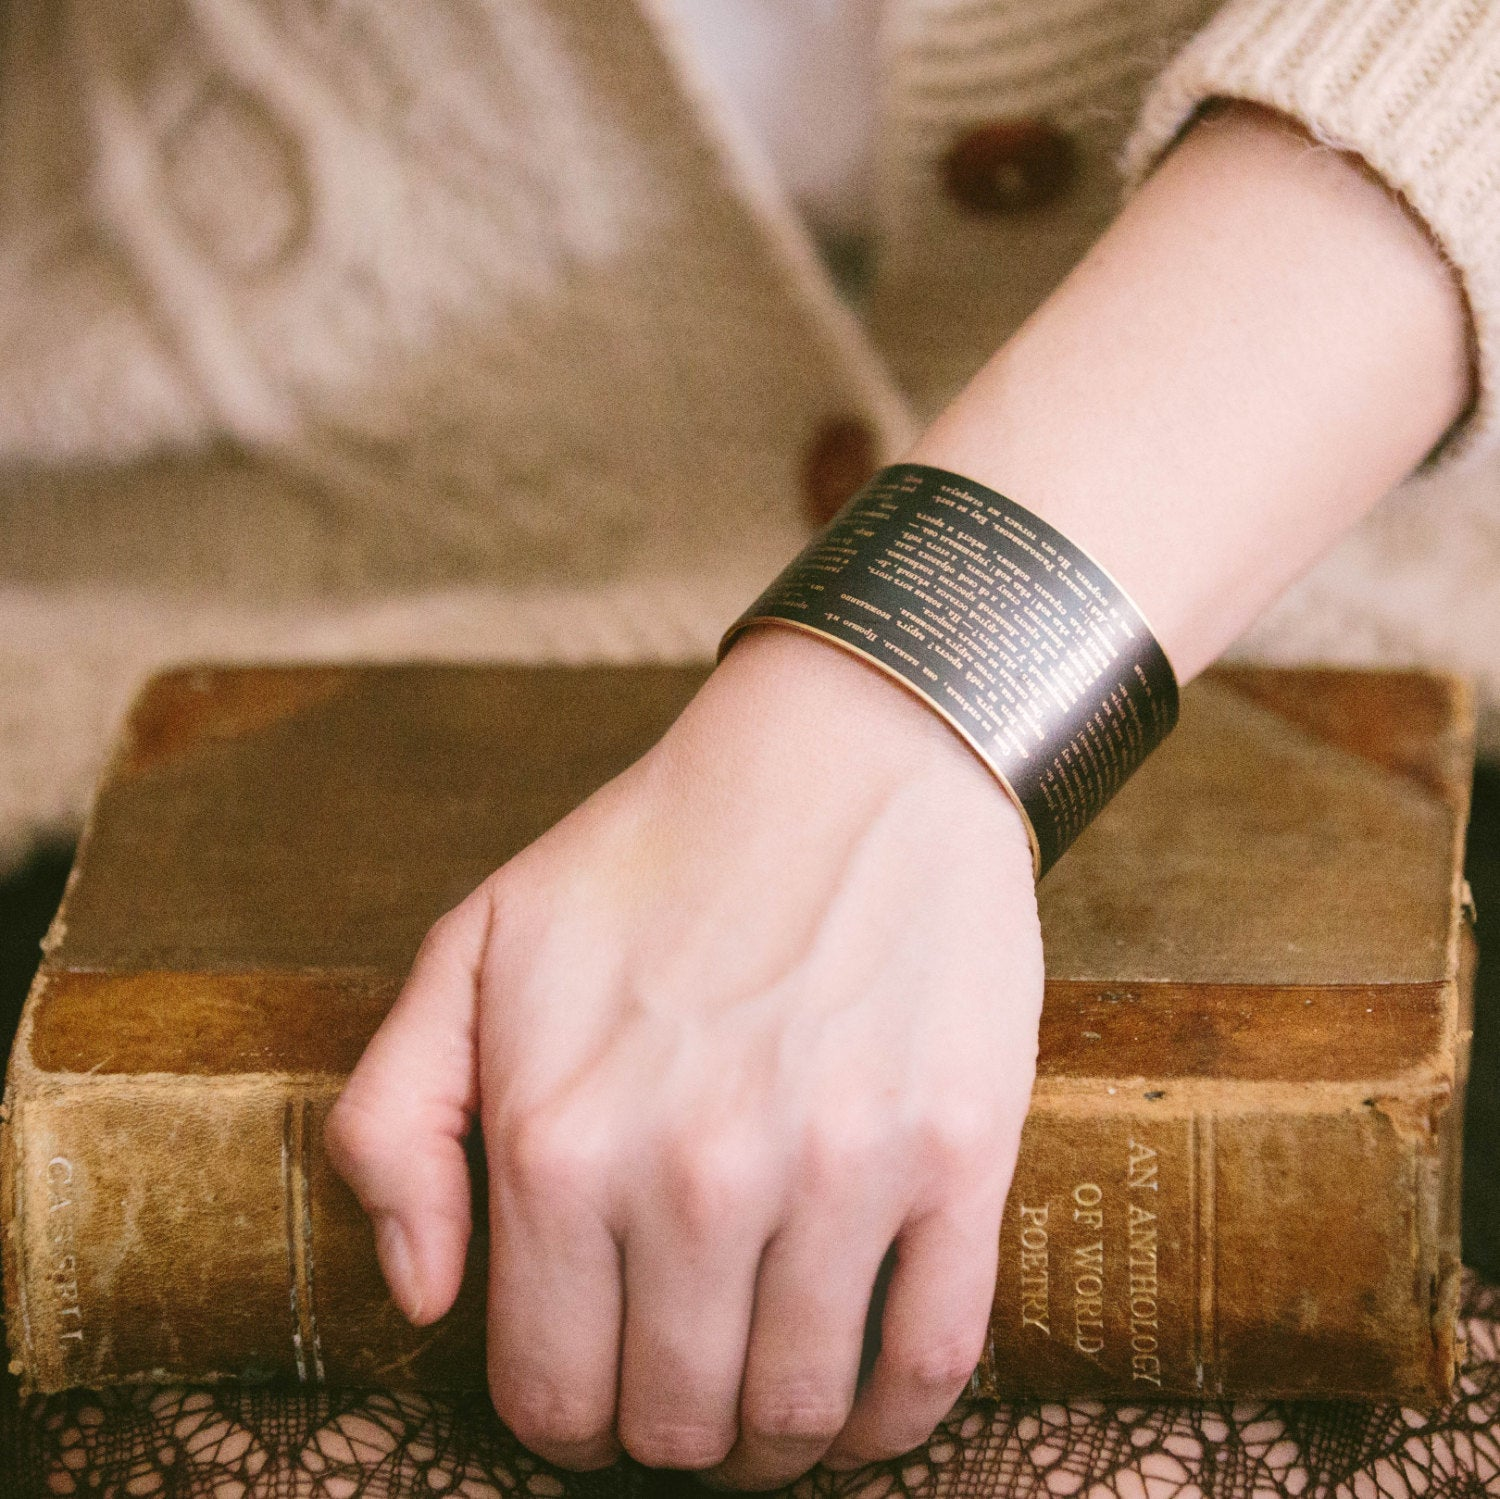 Dostoevsky Crime and Punishment Cuff Bracelet